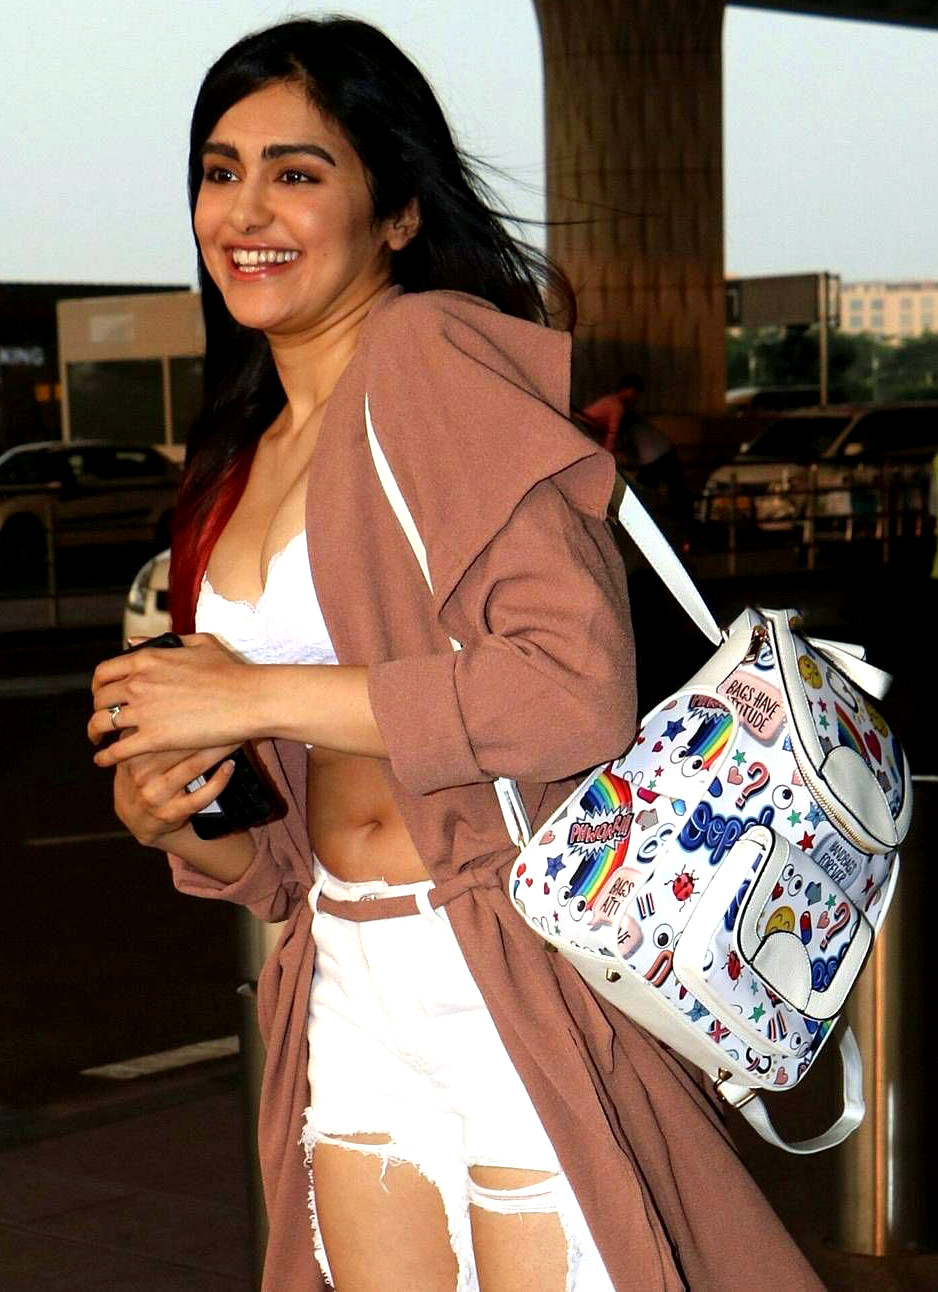 Adah Sharma shows of navel and cleavage - hot paparazzi pics